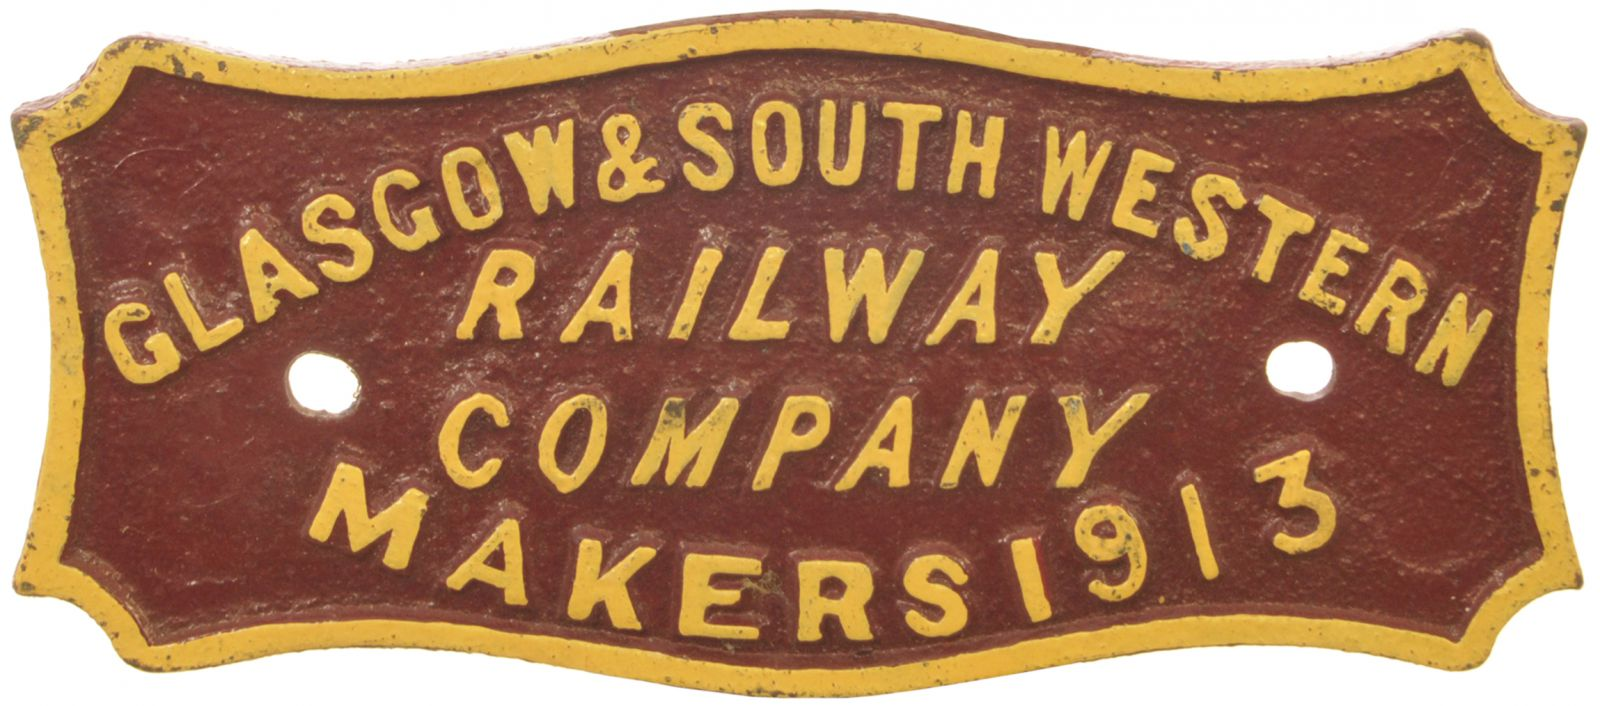 Lot 21 - Railway Wagonplates, Glasgow & South Western Railway, 1913: A Glasgow and South Western Railway